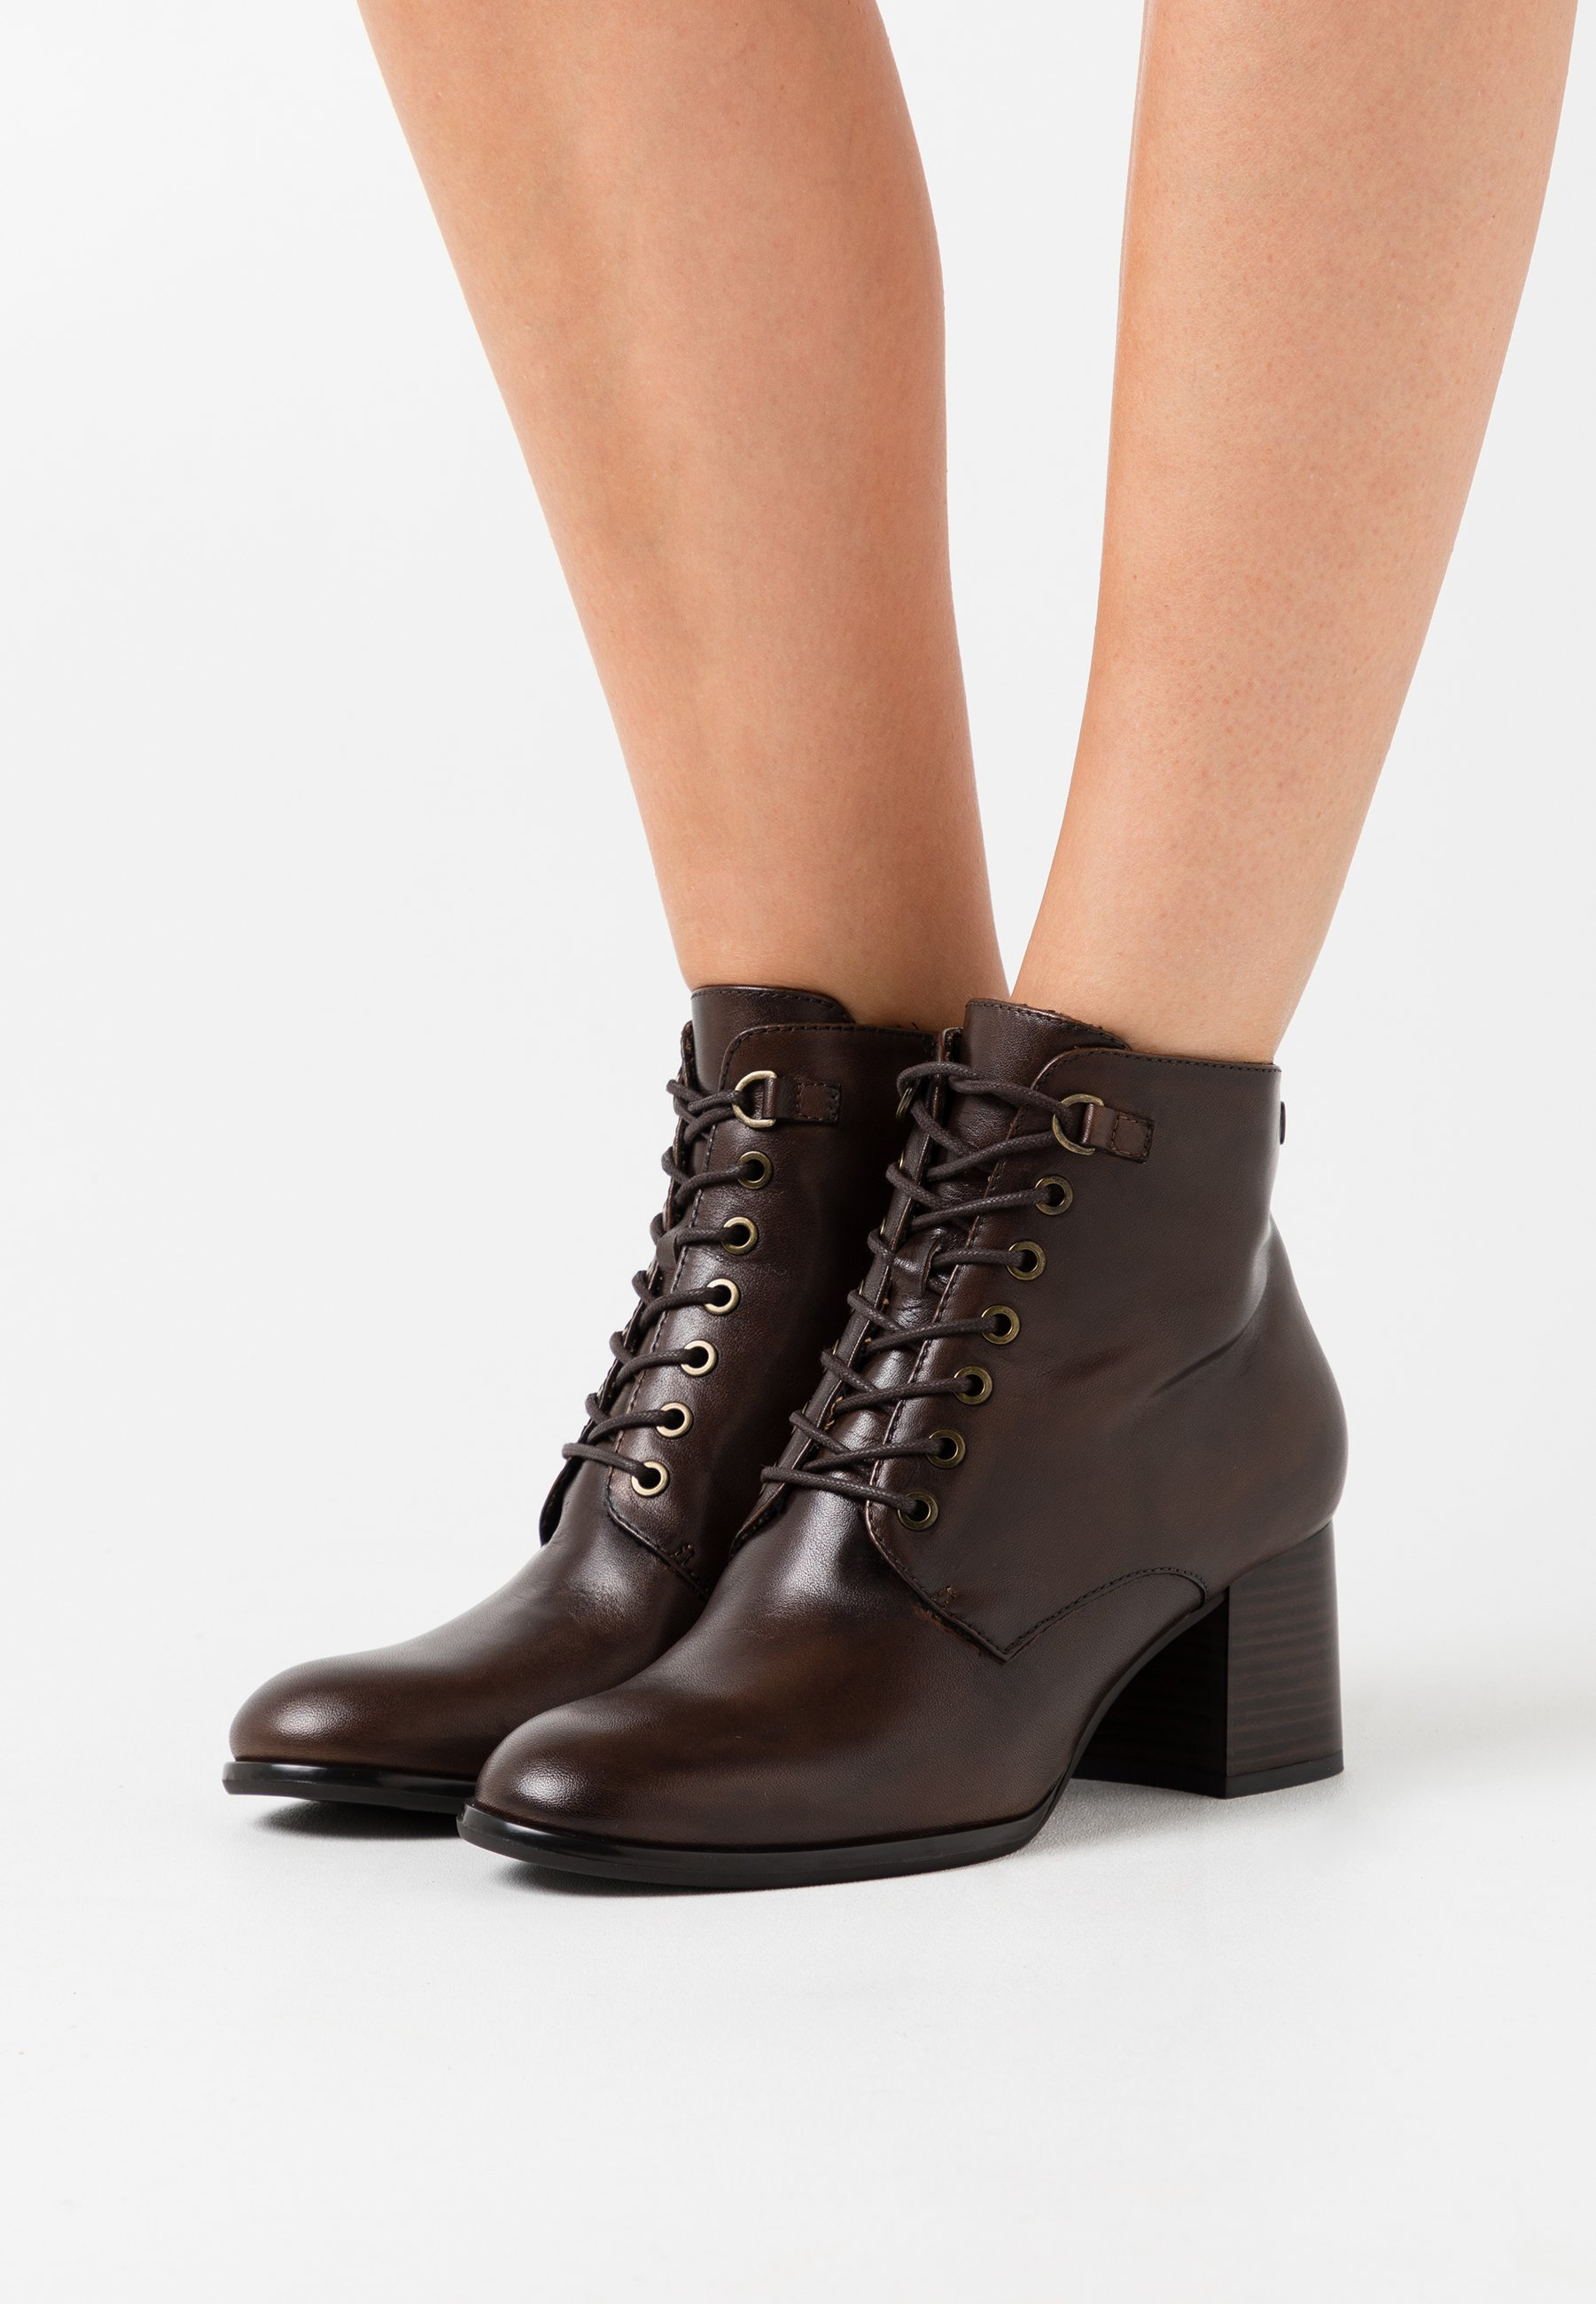 For Cheap Popular Women's Shoes s.Oliver BLACK LABEL Ankle boots brown Ih0Fg8WTw CqiCfowIM